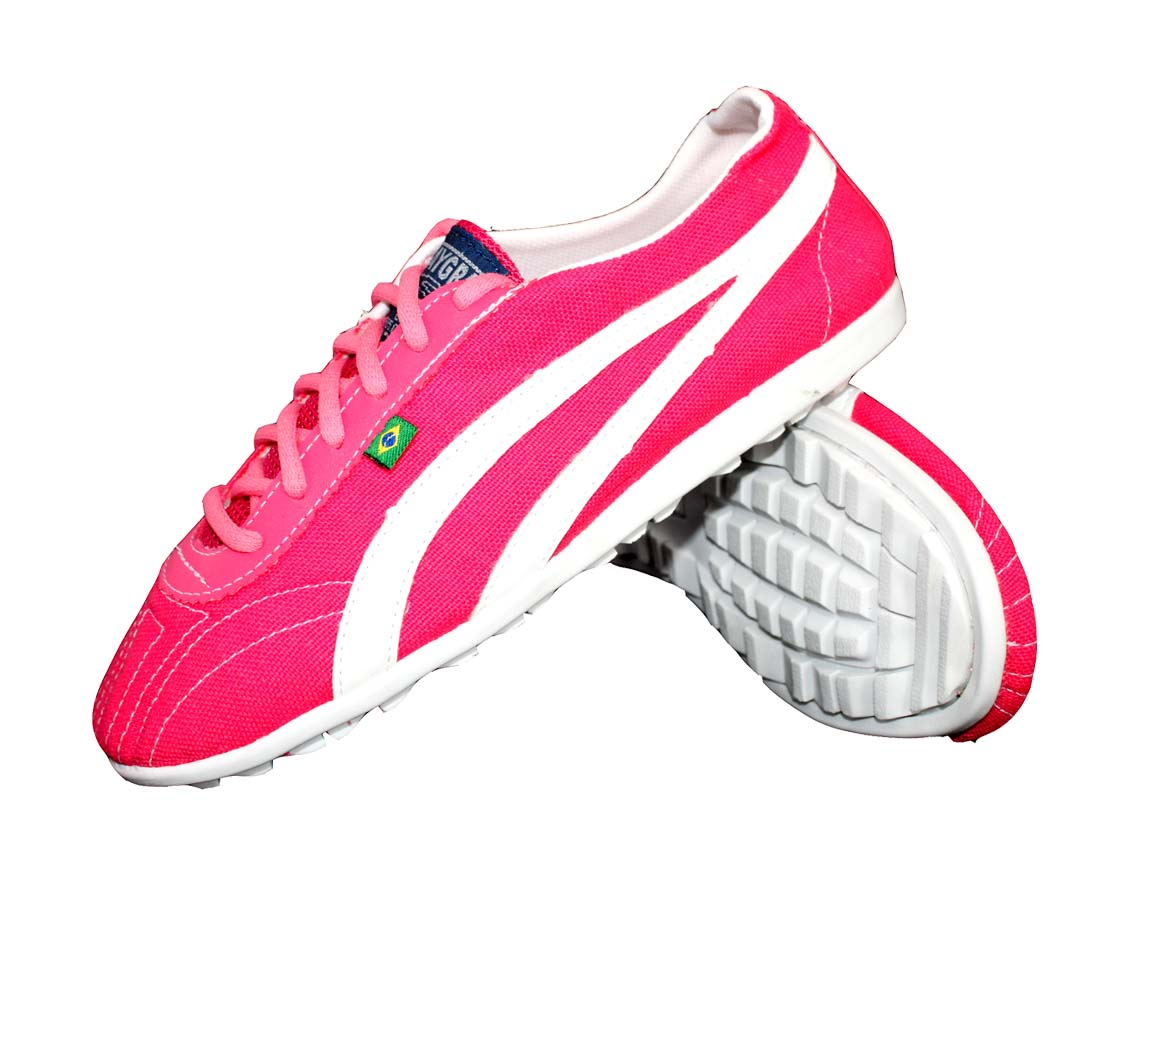 Chaussure Ecologique Femme Costuras Pink/Blanc